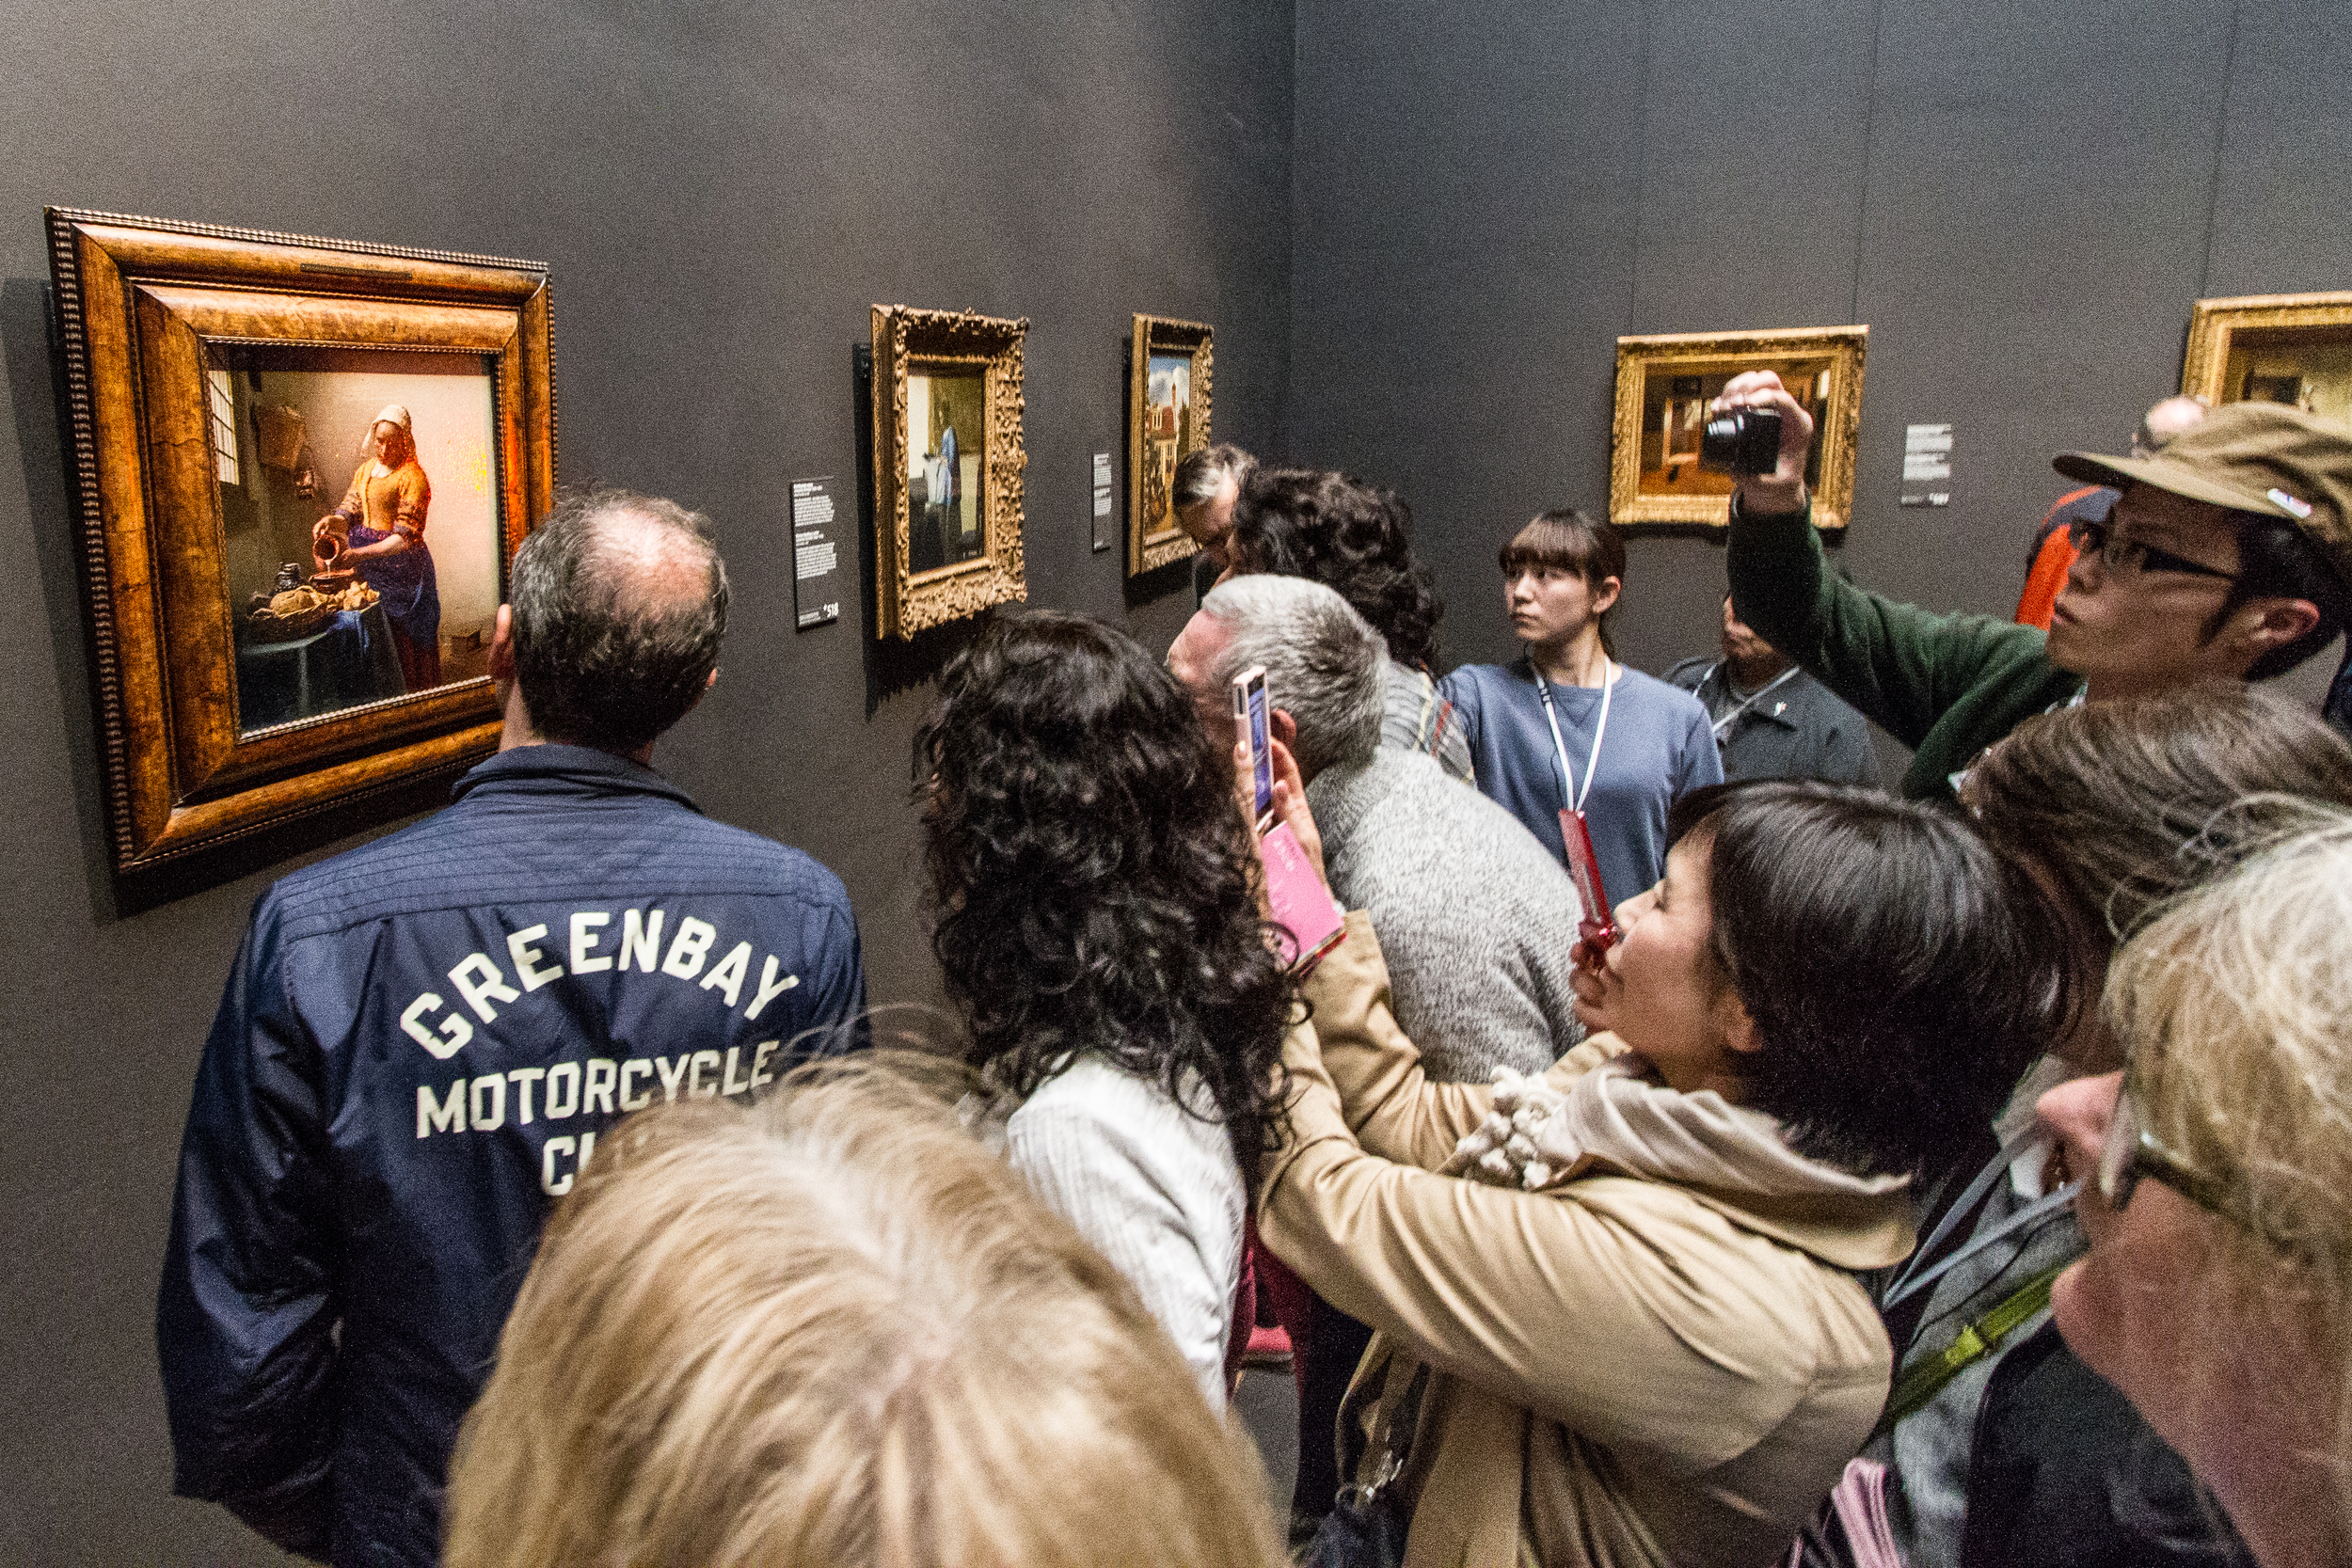 Visitors spend an average of 7-9 seconds looking at an art work. Even though the Rijksmuseum offers complete open source access to its collections online, visitors still prefer to capture their own memory of Vermeer's Milkmaid. Makes me wonder what they are really getting from the experience. Image credit: John Dawson